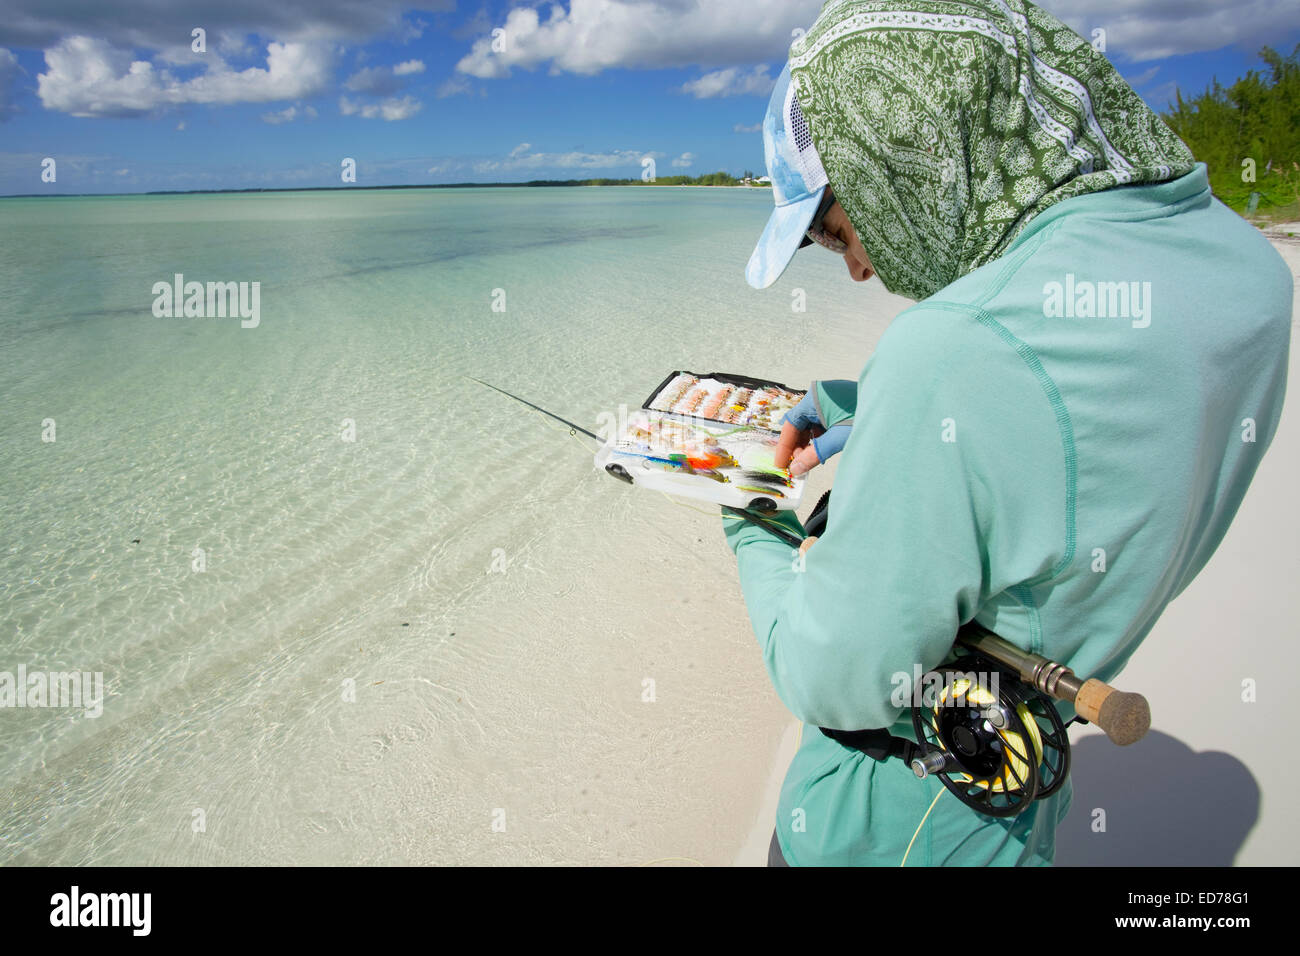 Man saltwater fly fishing for bonefish in Abaco, Bahamas - Stock Image